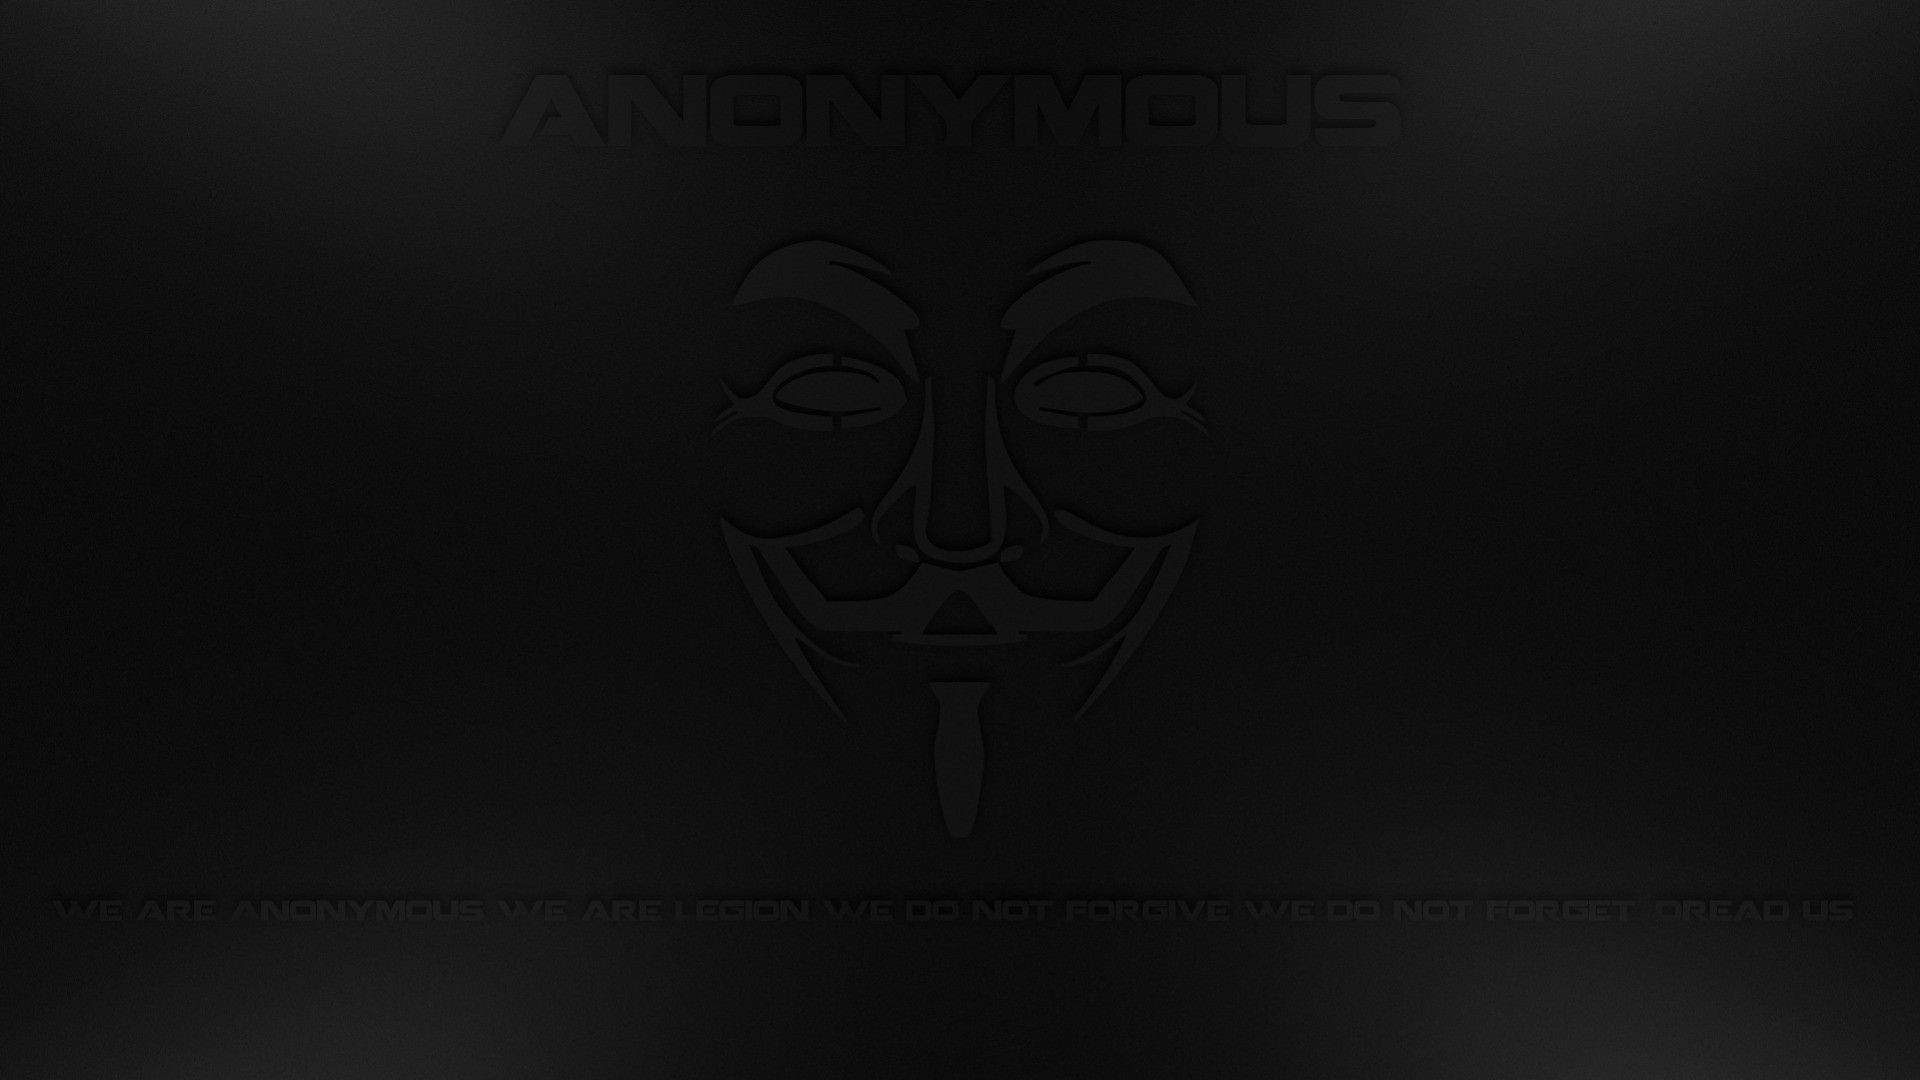 Anonymous Wallpaper 79 Images